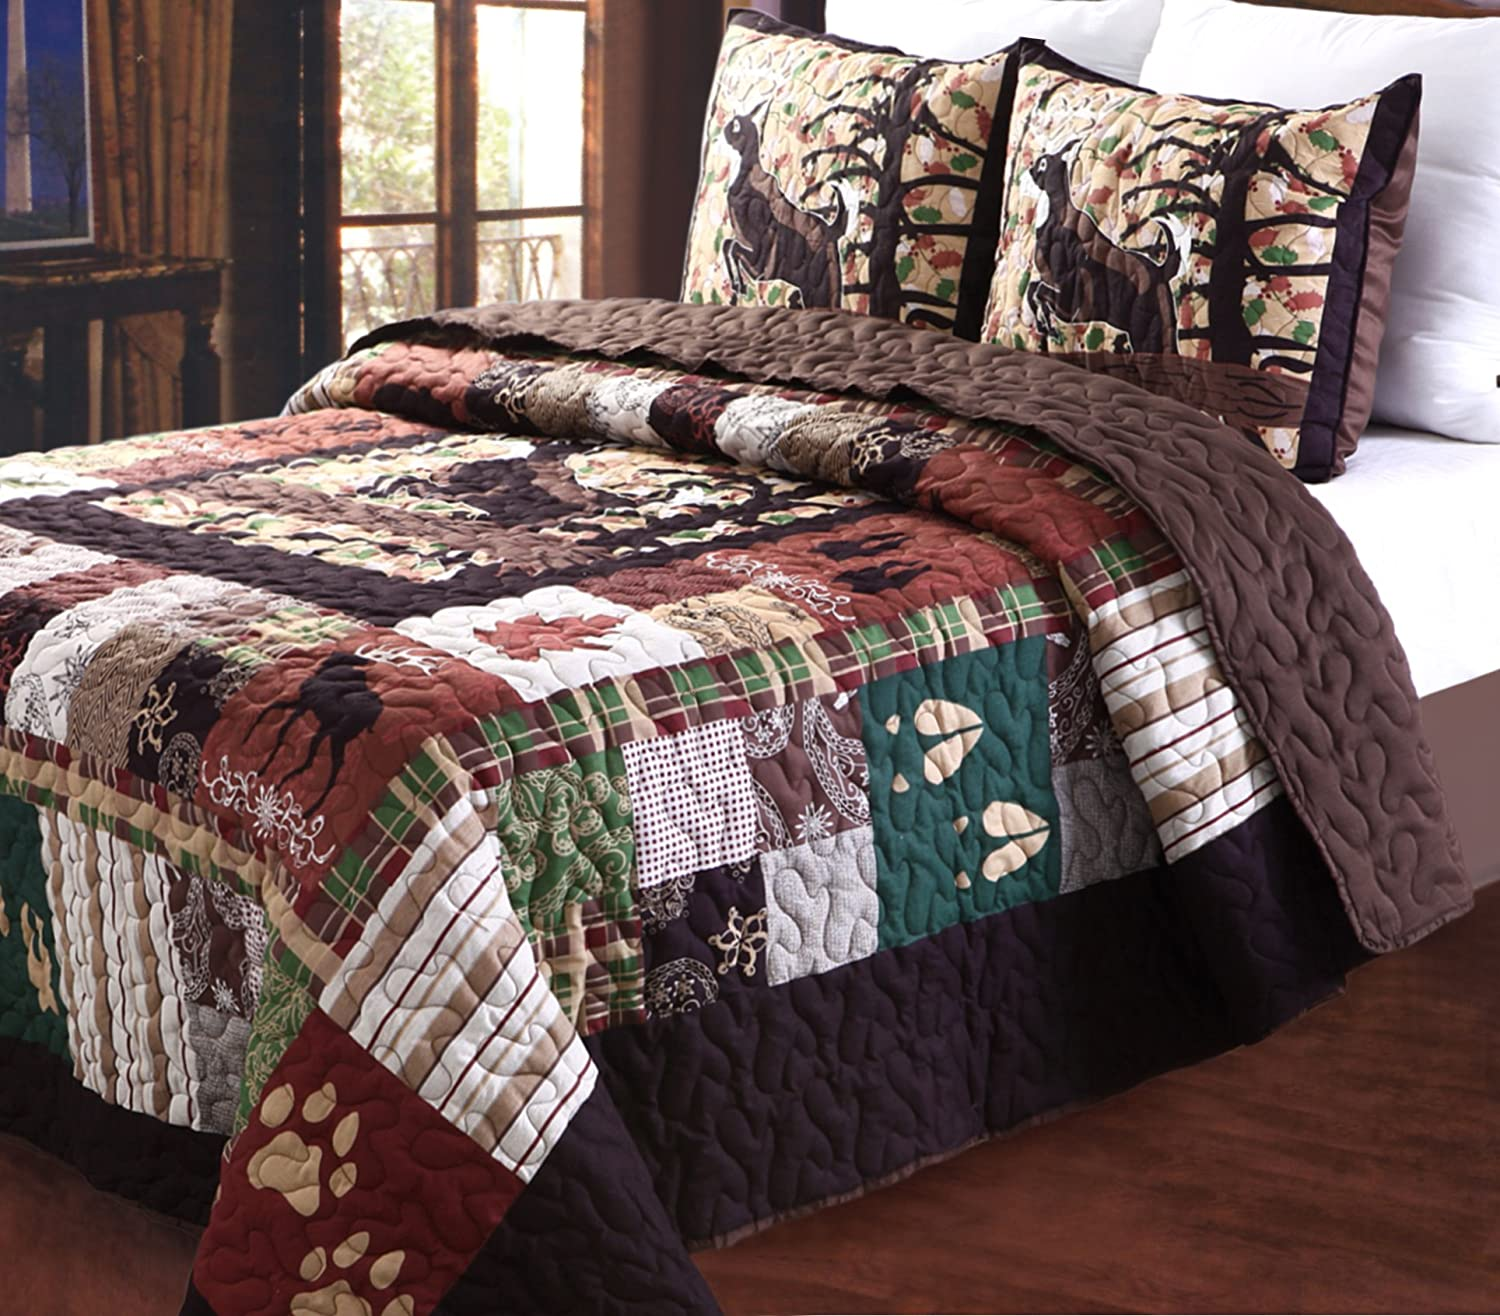 Charmant Amazon.com: Greenland Home 3 Piece Whitetail Lodge Quilt Set, Full/Queen:  Home U0026 Kitchen